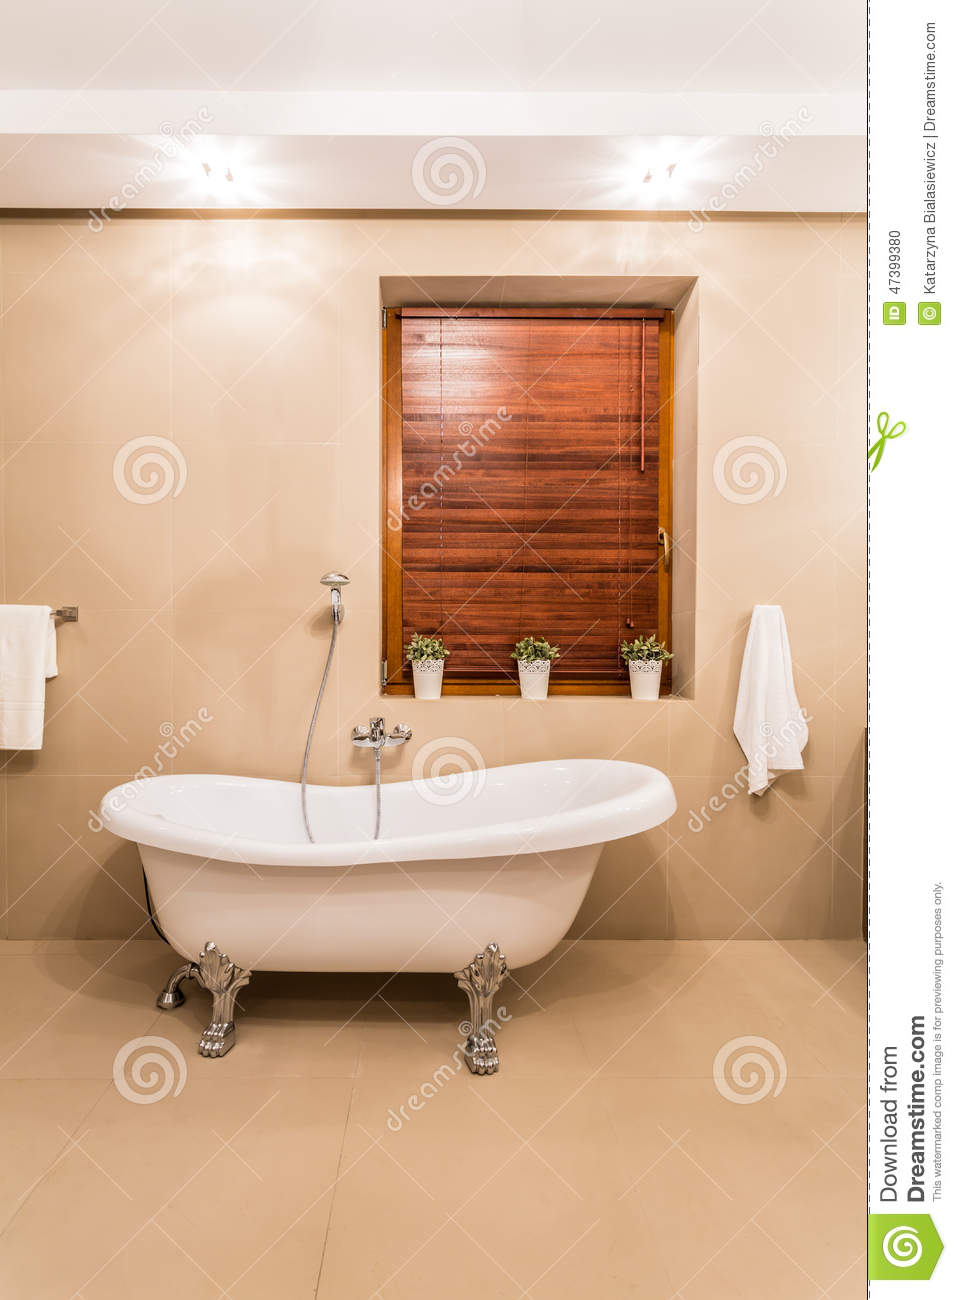 Old style bathtub stock photo image 47399380 for Bathtub styles